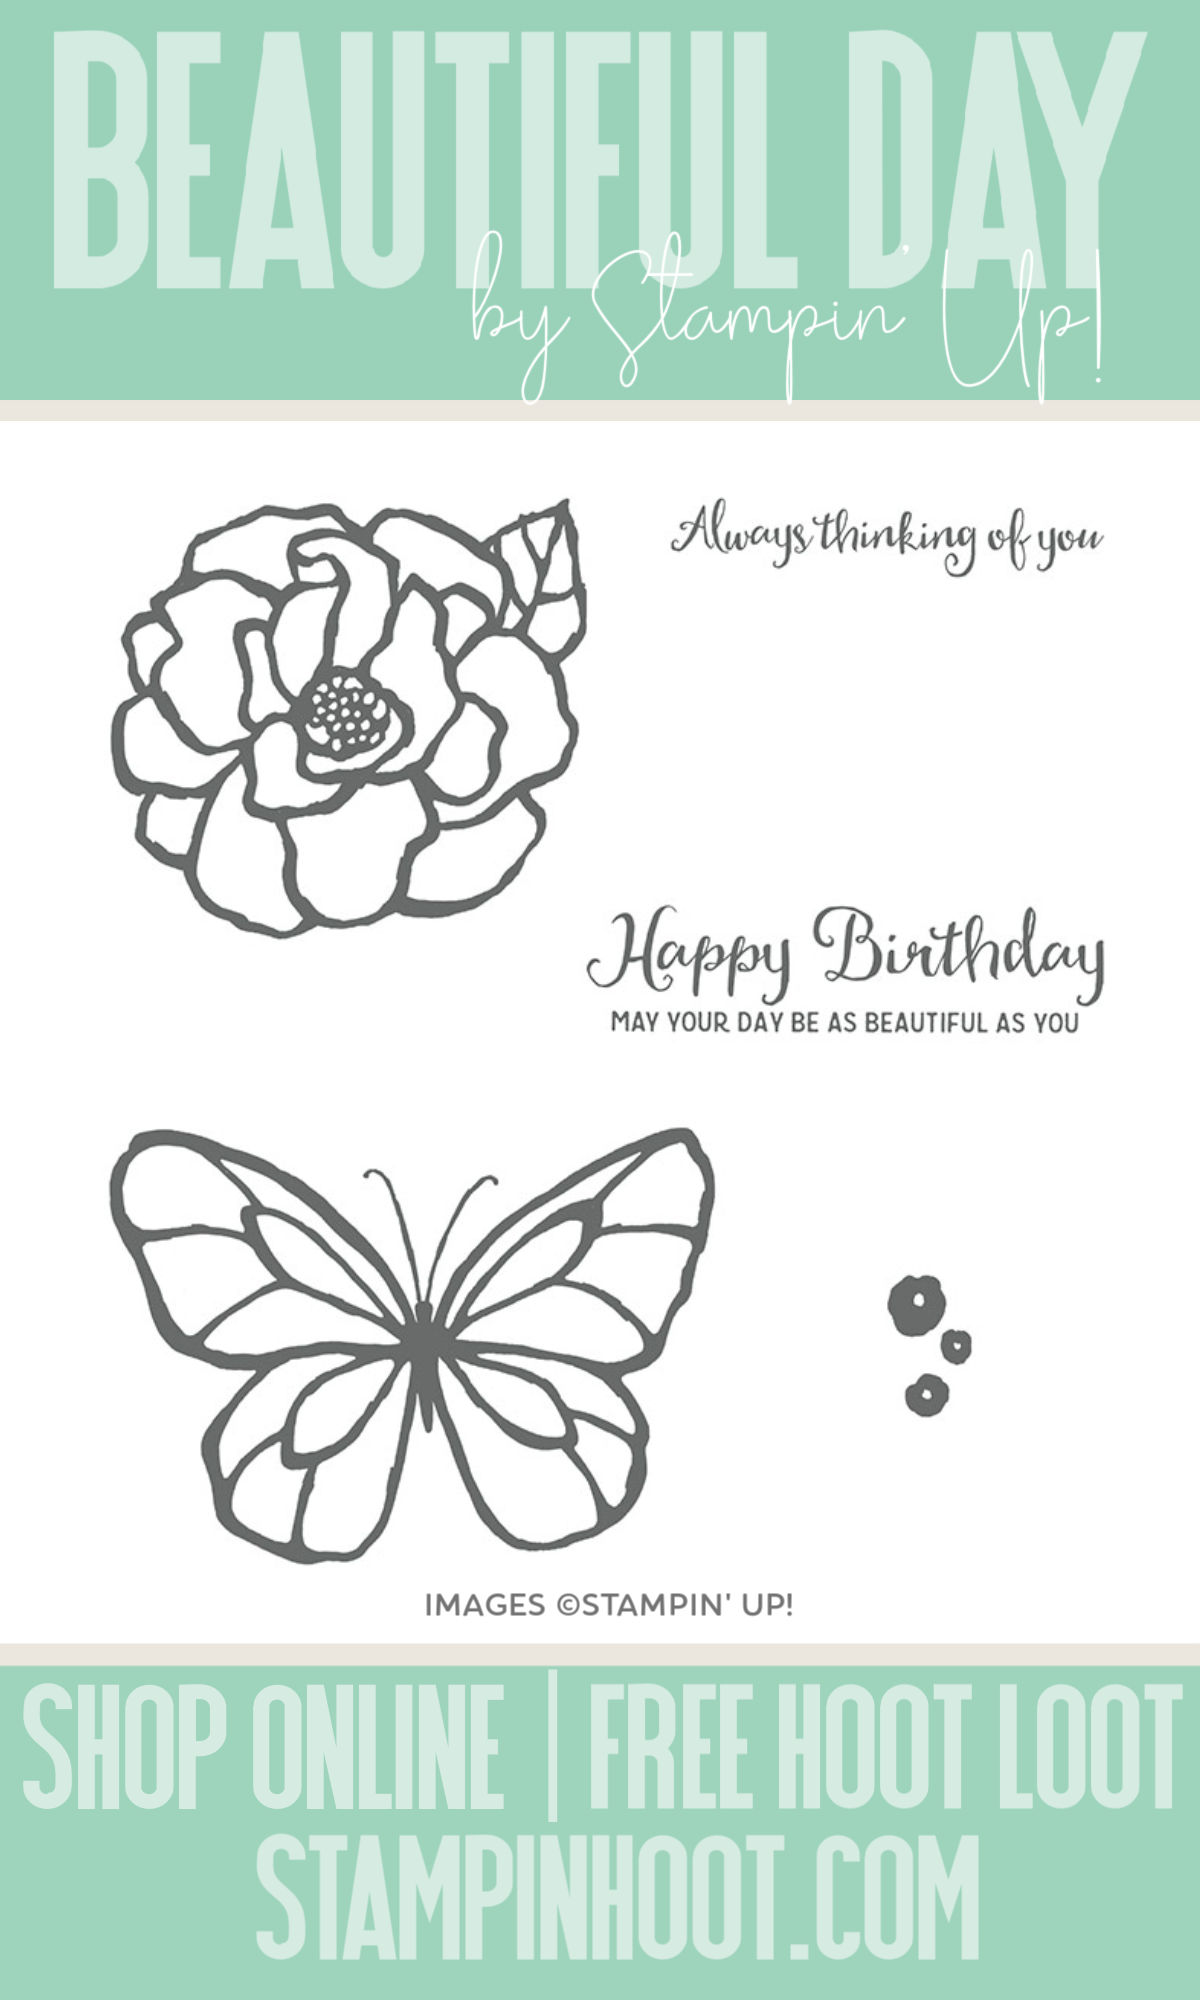 Stampin' Hoot Pin Beautiful Day Stamp Set by Stampin' Up!